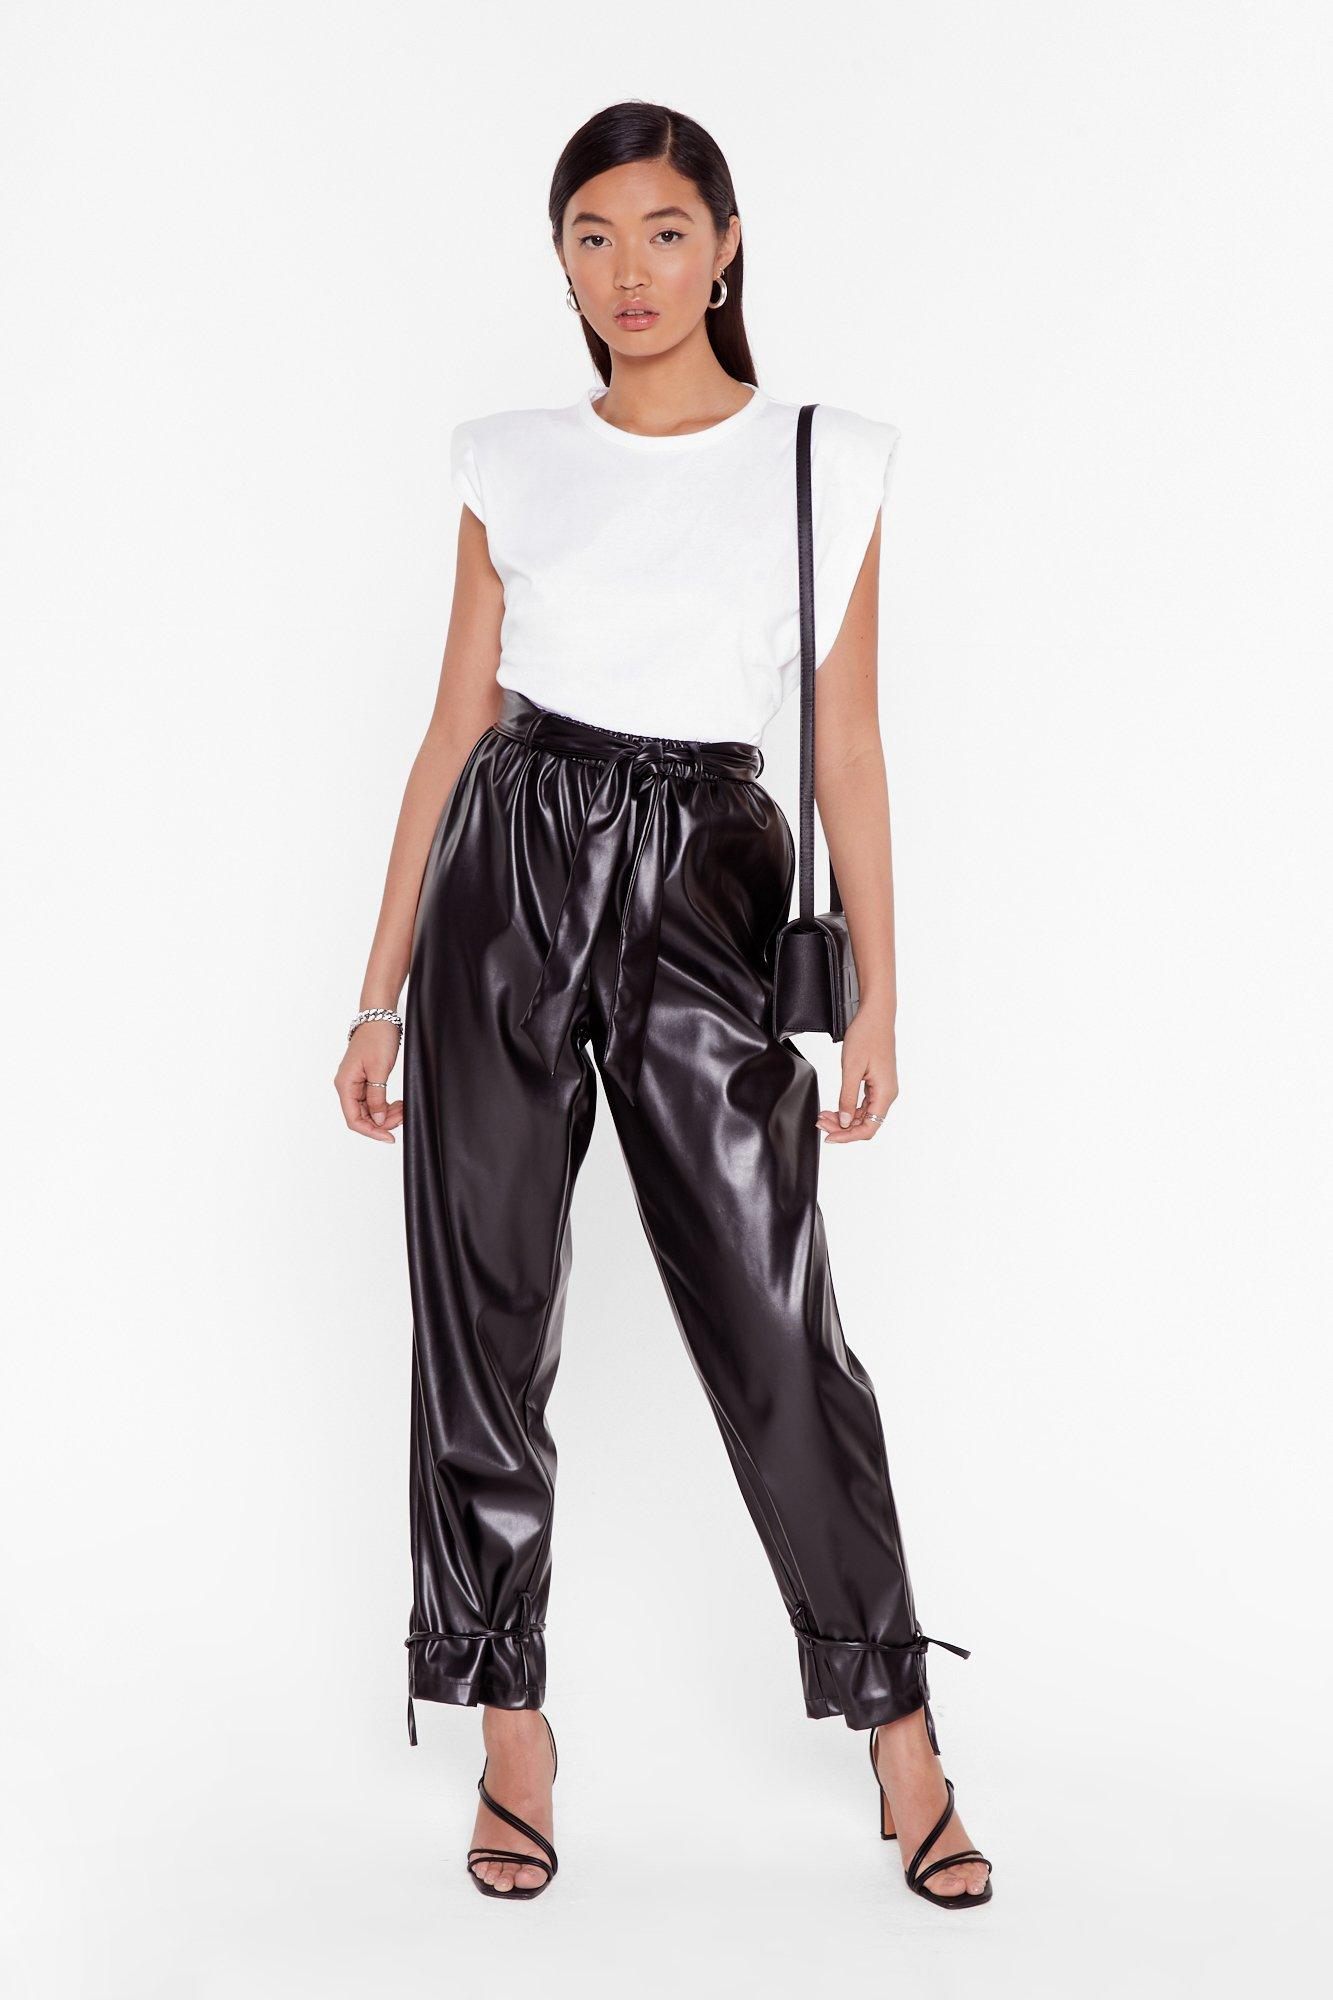 Image of Tie 'Em Down Faux Leather High-Waisted Pants